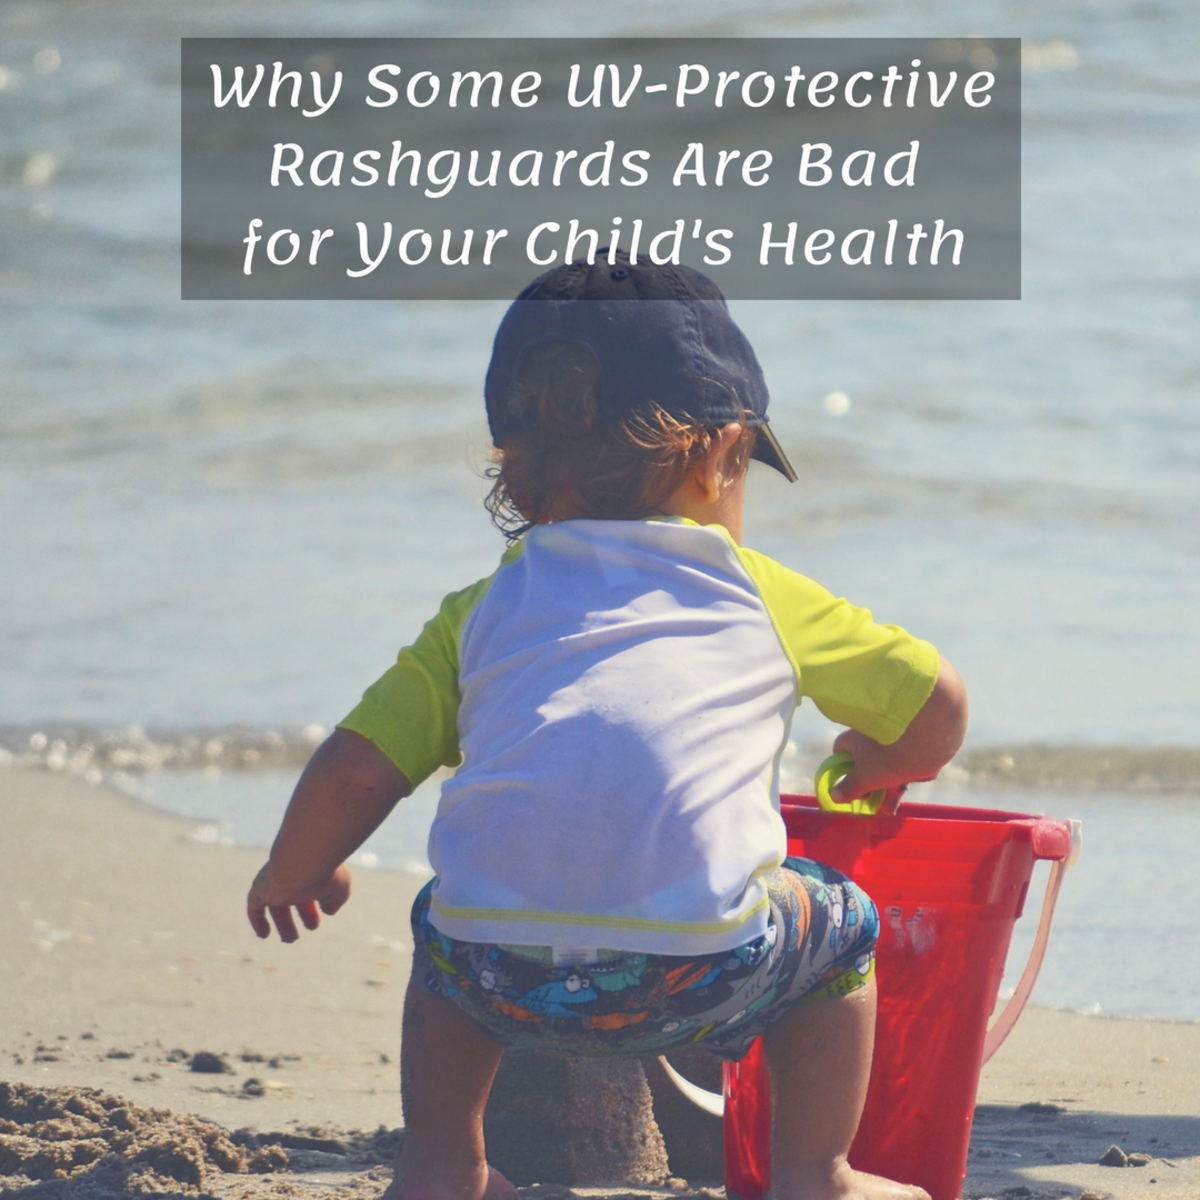 What Chemicals Are in UV-Protective Rash Guards or Swim Shirts?